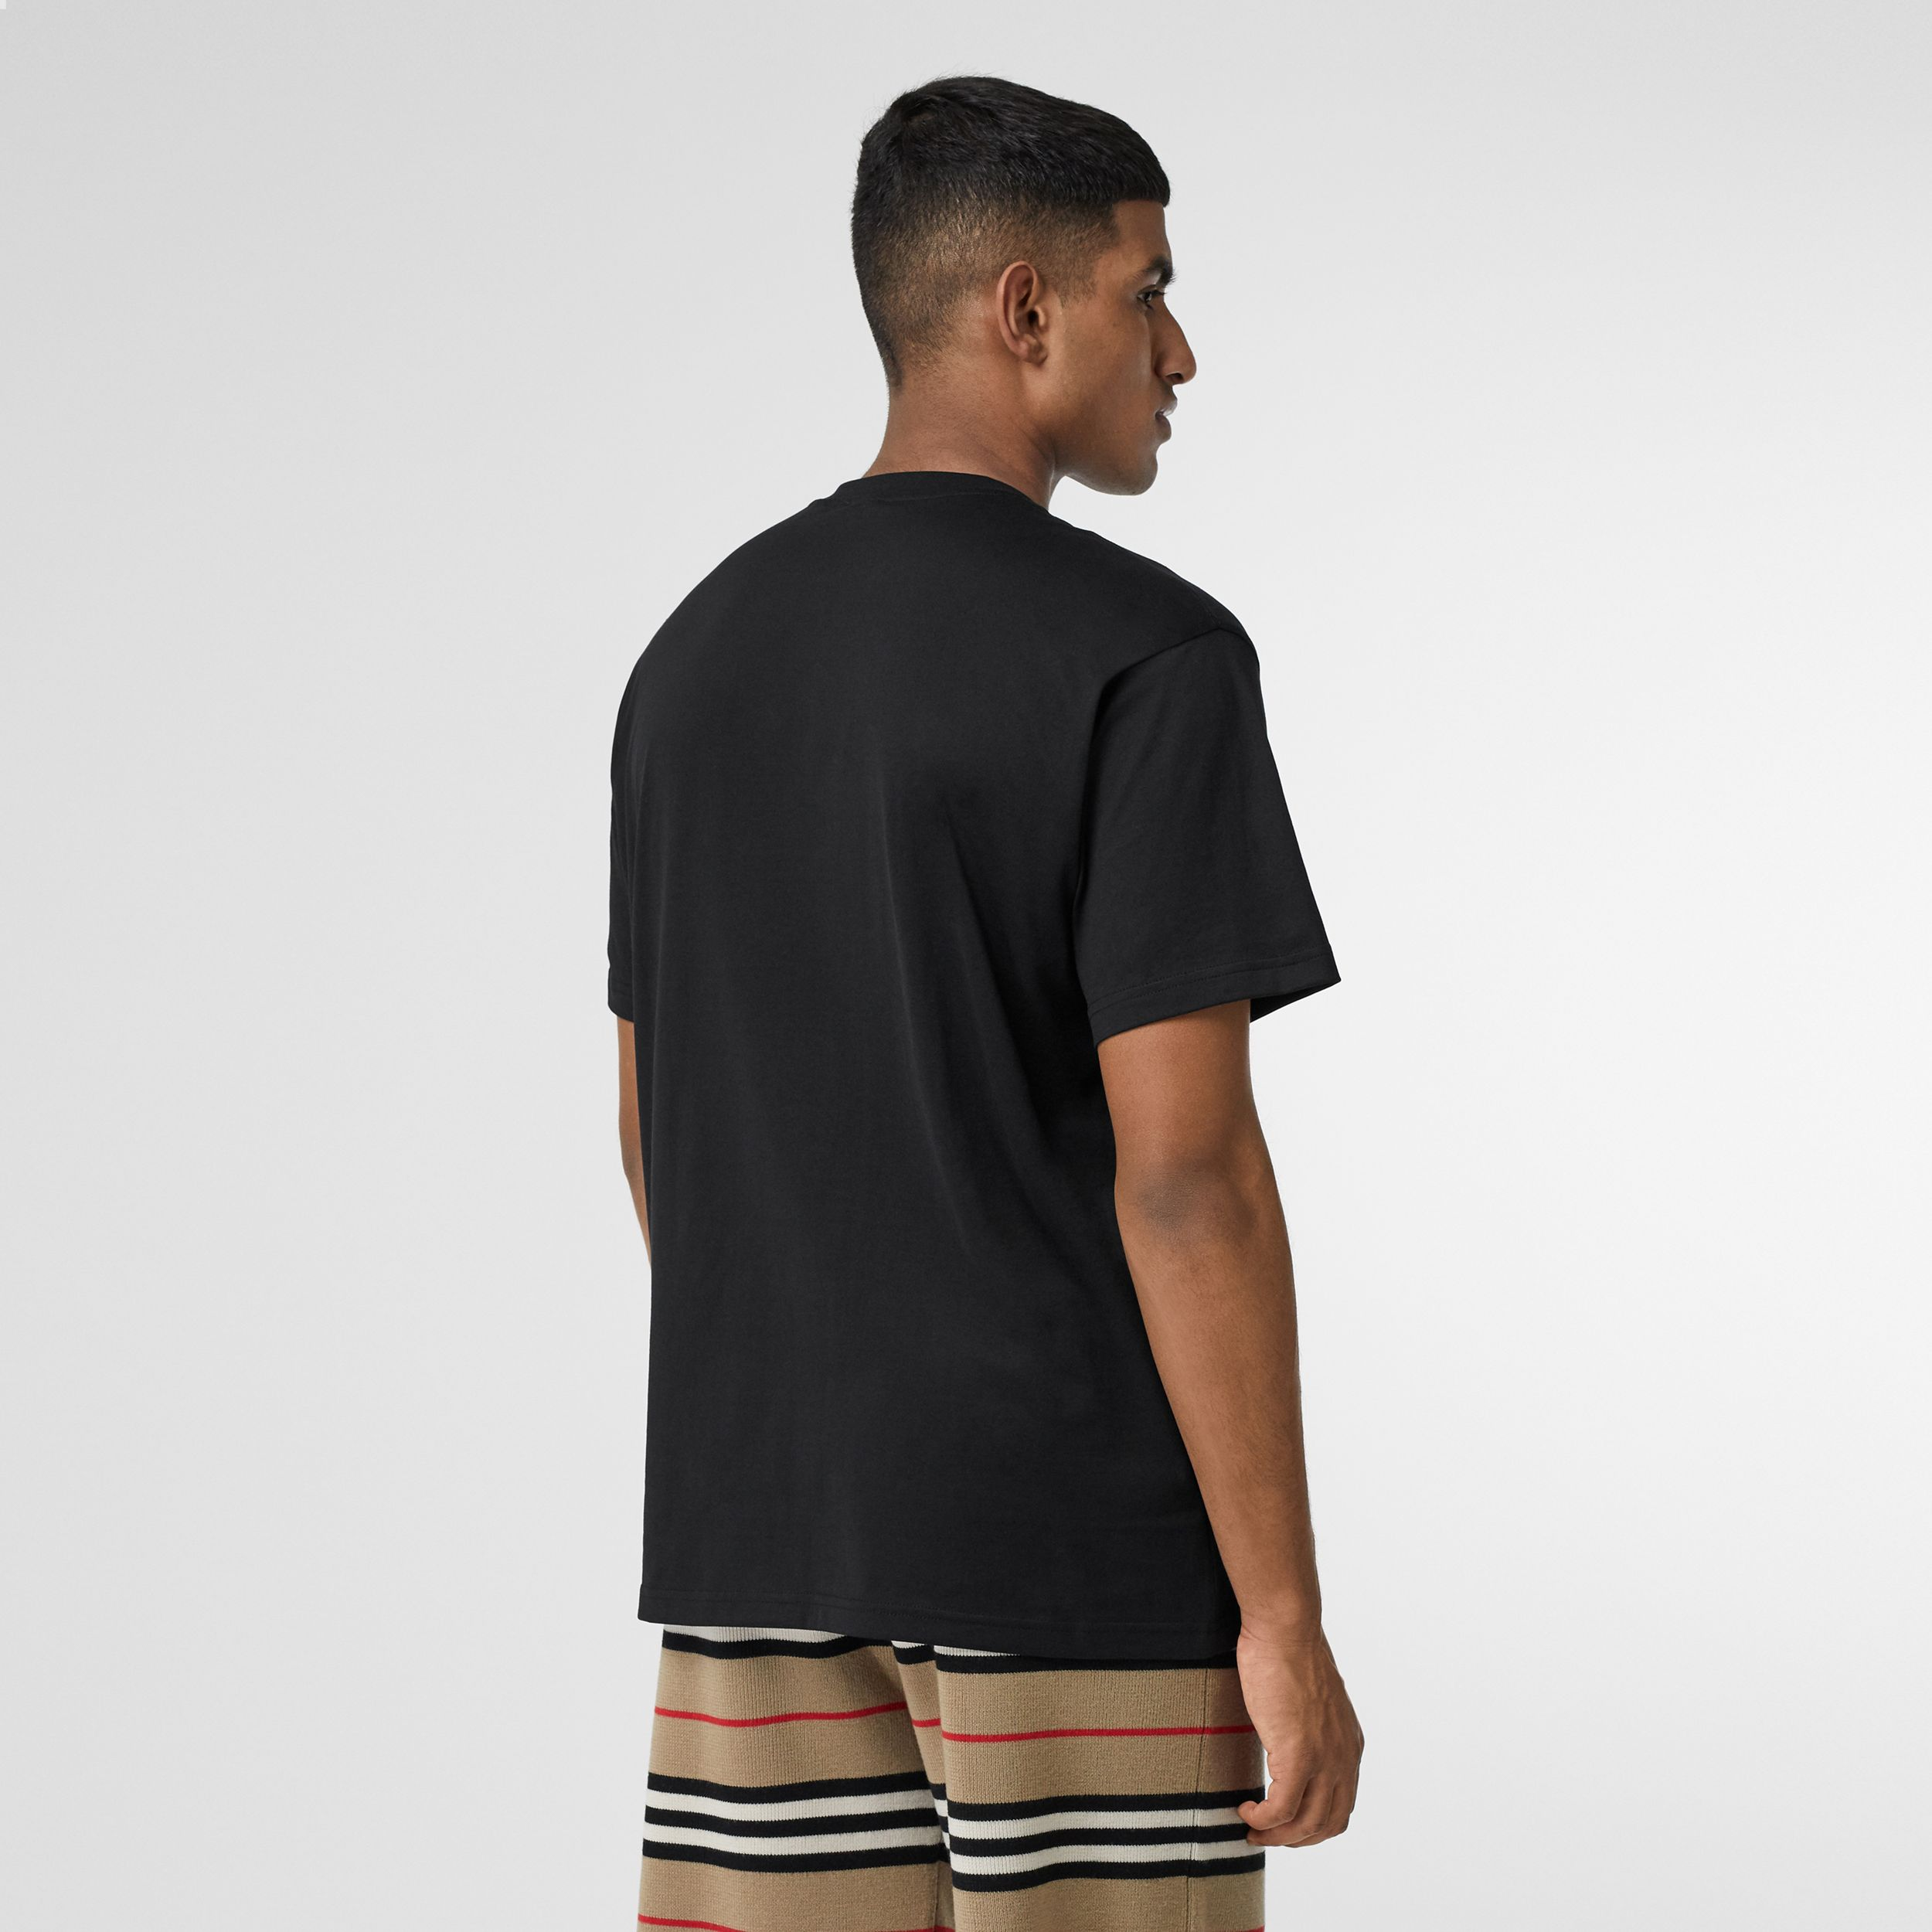 Monogram Motif Cotton Oversized T-shirt in Black - Men | Burberry Australia - 3